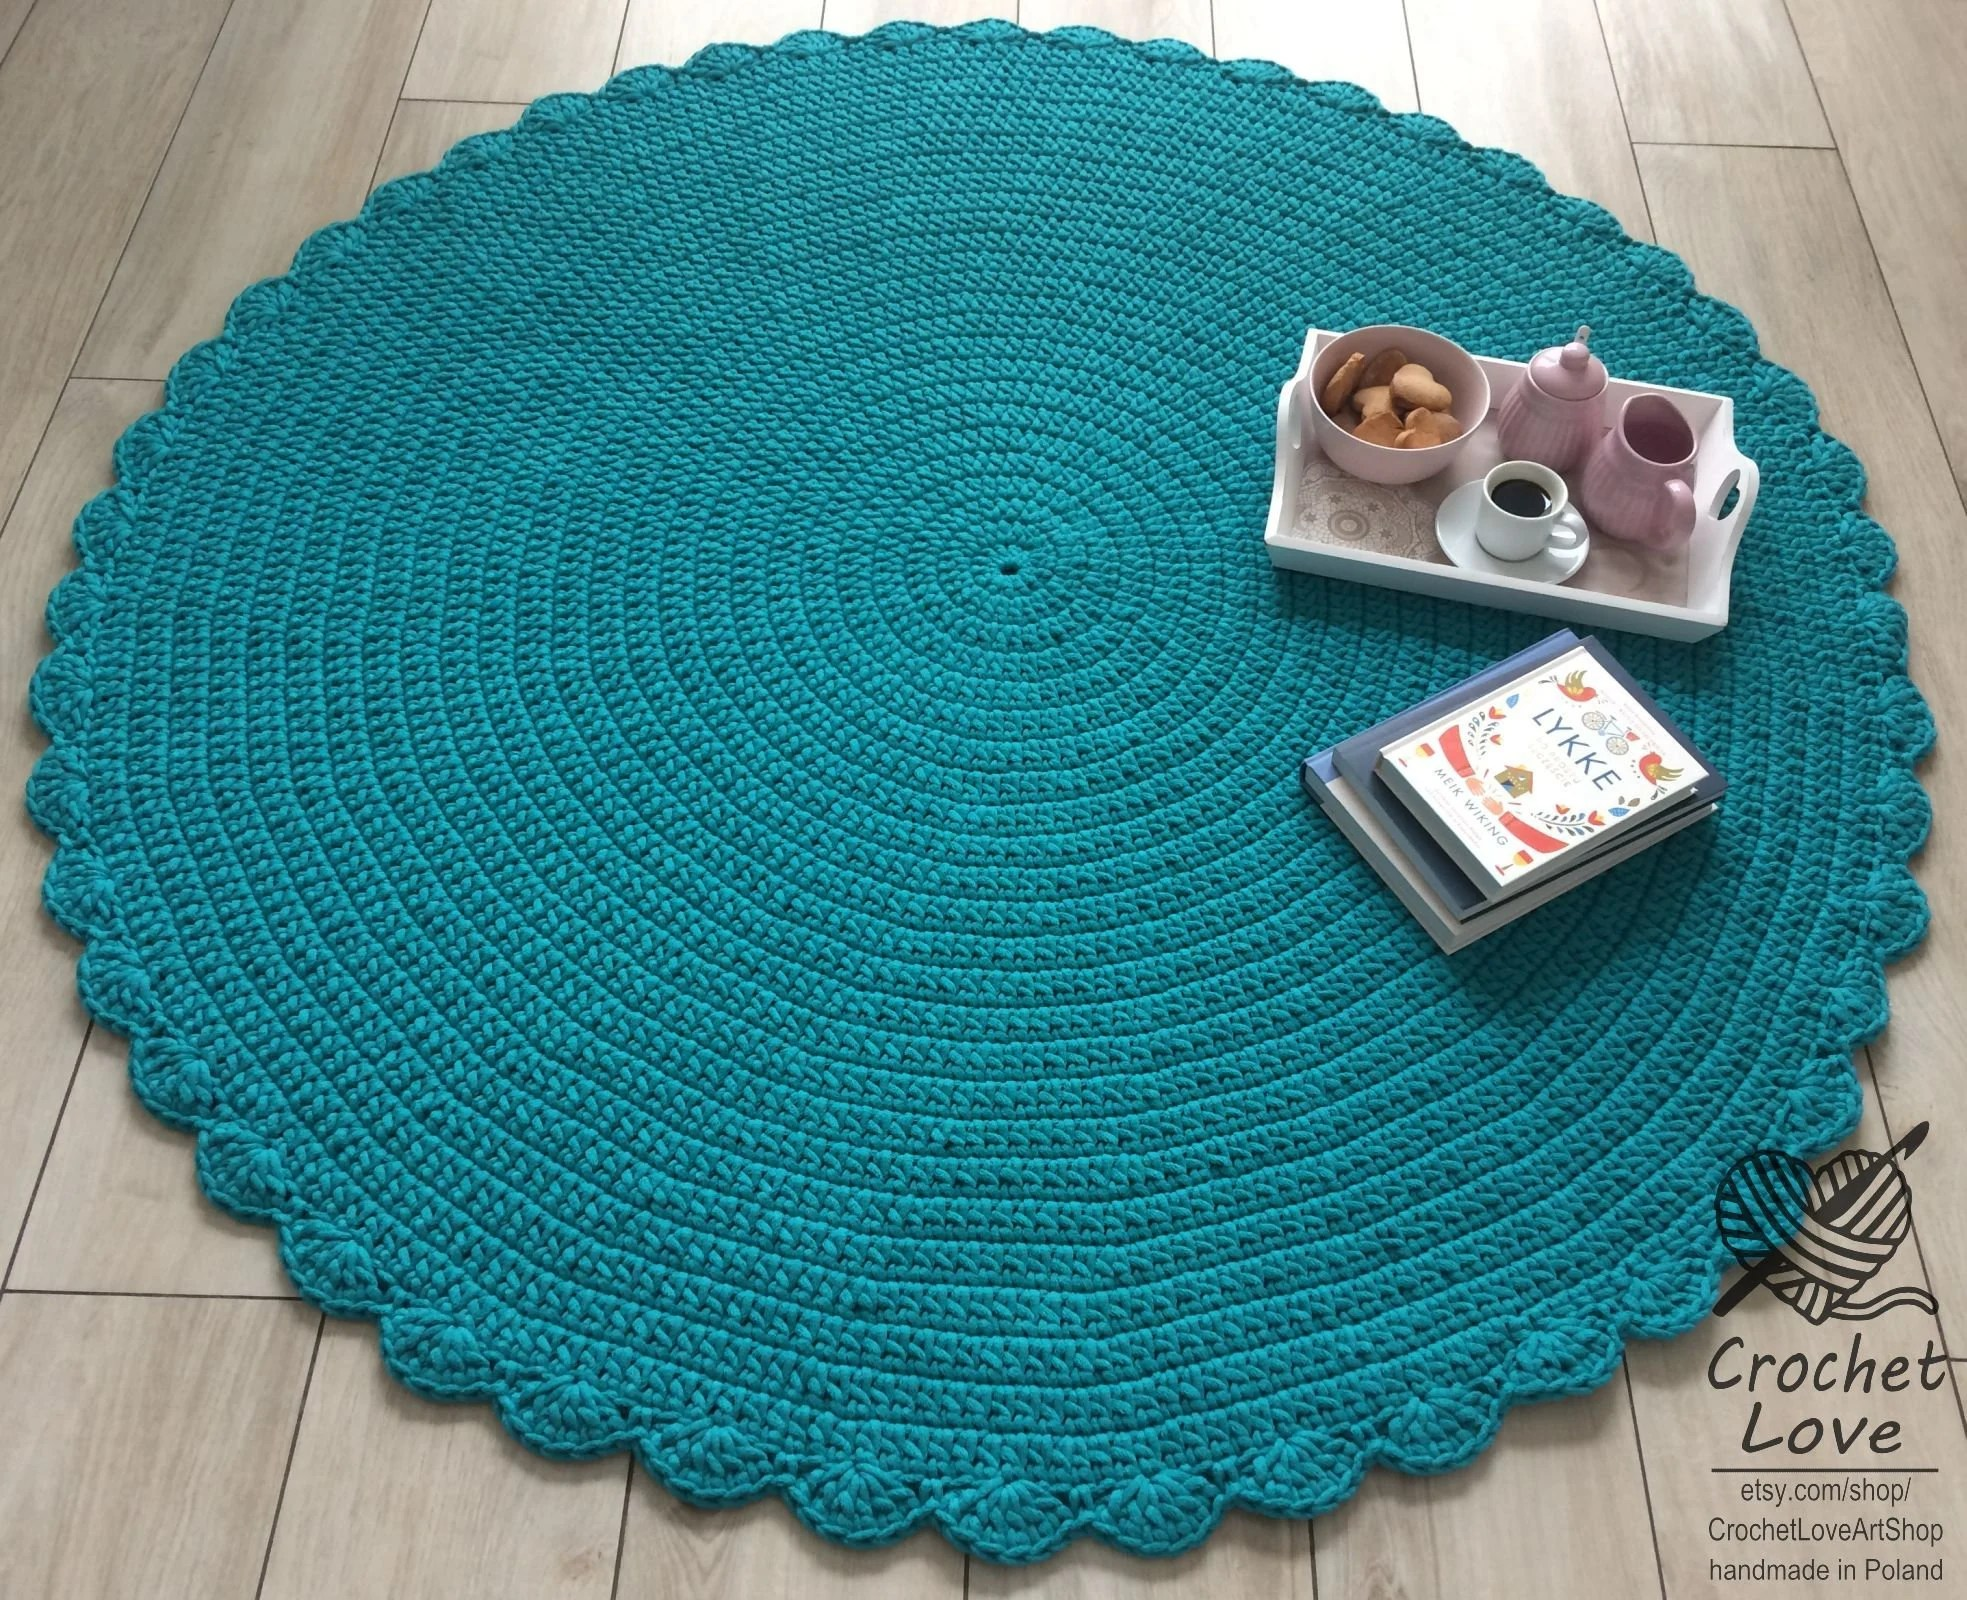 Runde Teppiche Modern Many Colors Many Sizes Modern Crochet Rug Round Rug Teppiche Runde Teppich Children Rug Crochet Carpet Cotton Emerald Crochet Rug